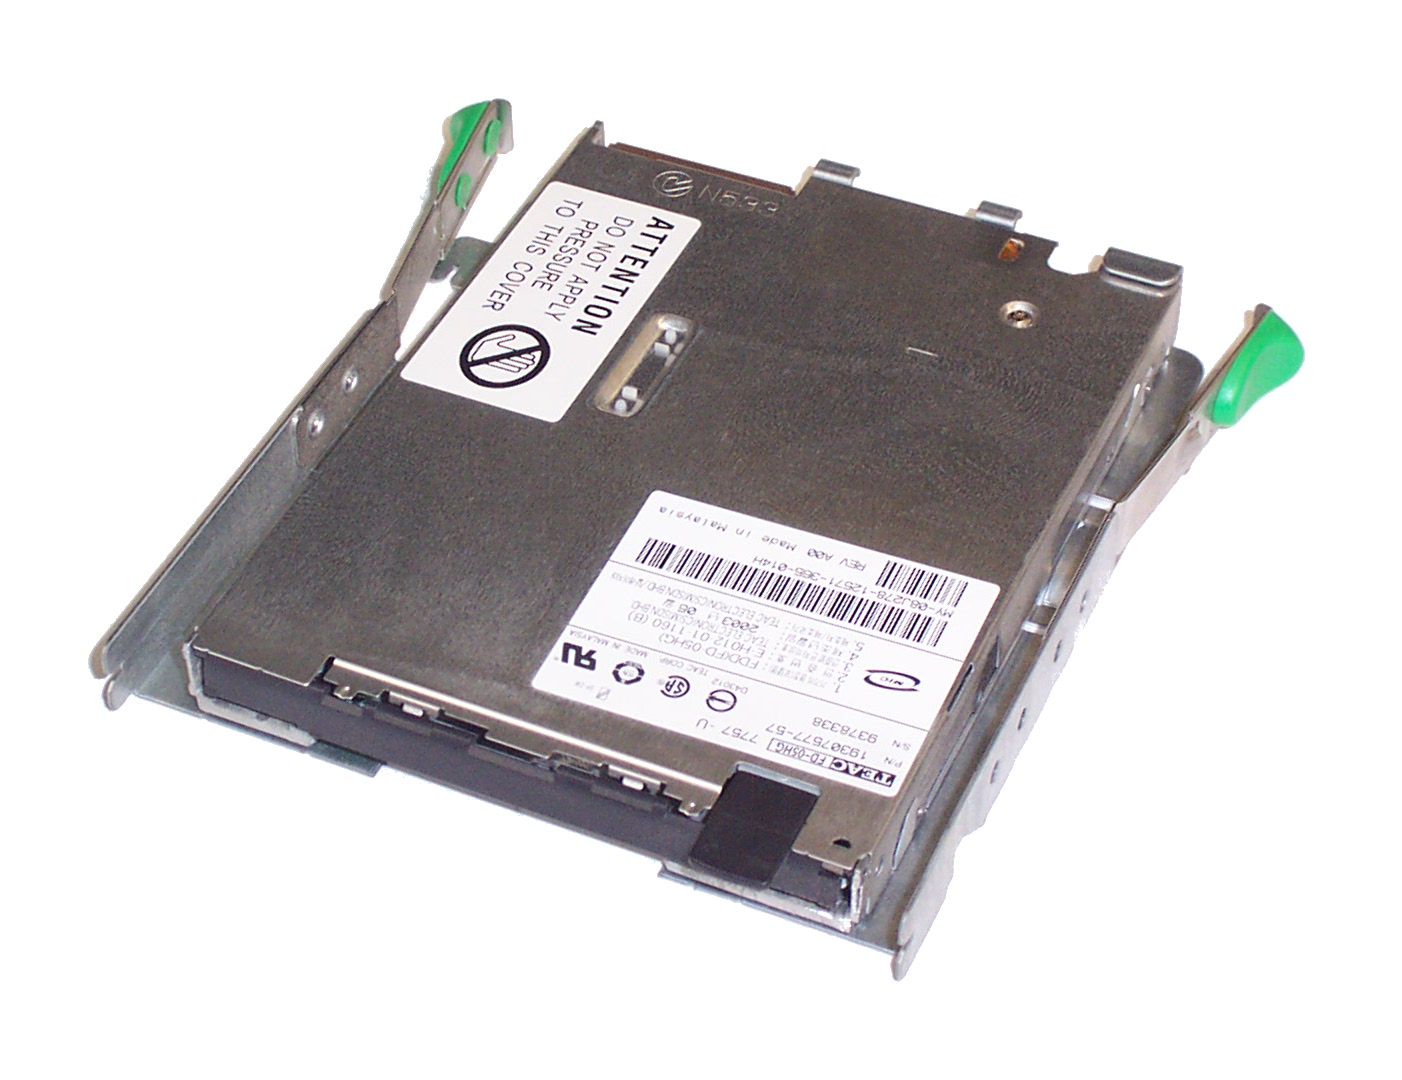 DELL TÉLÉCHARGER GX260 GRAPHIQUE CARTE OPTIPLEX